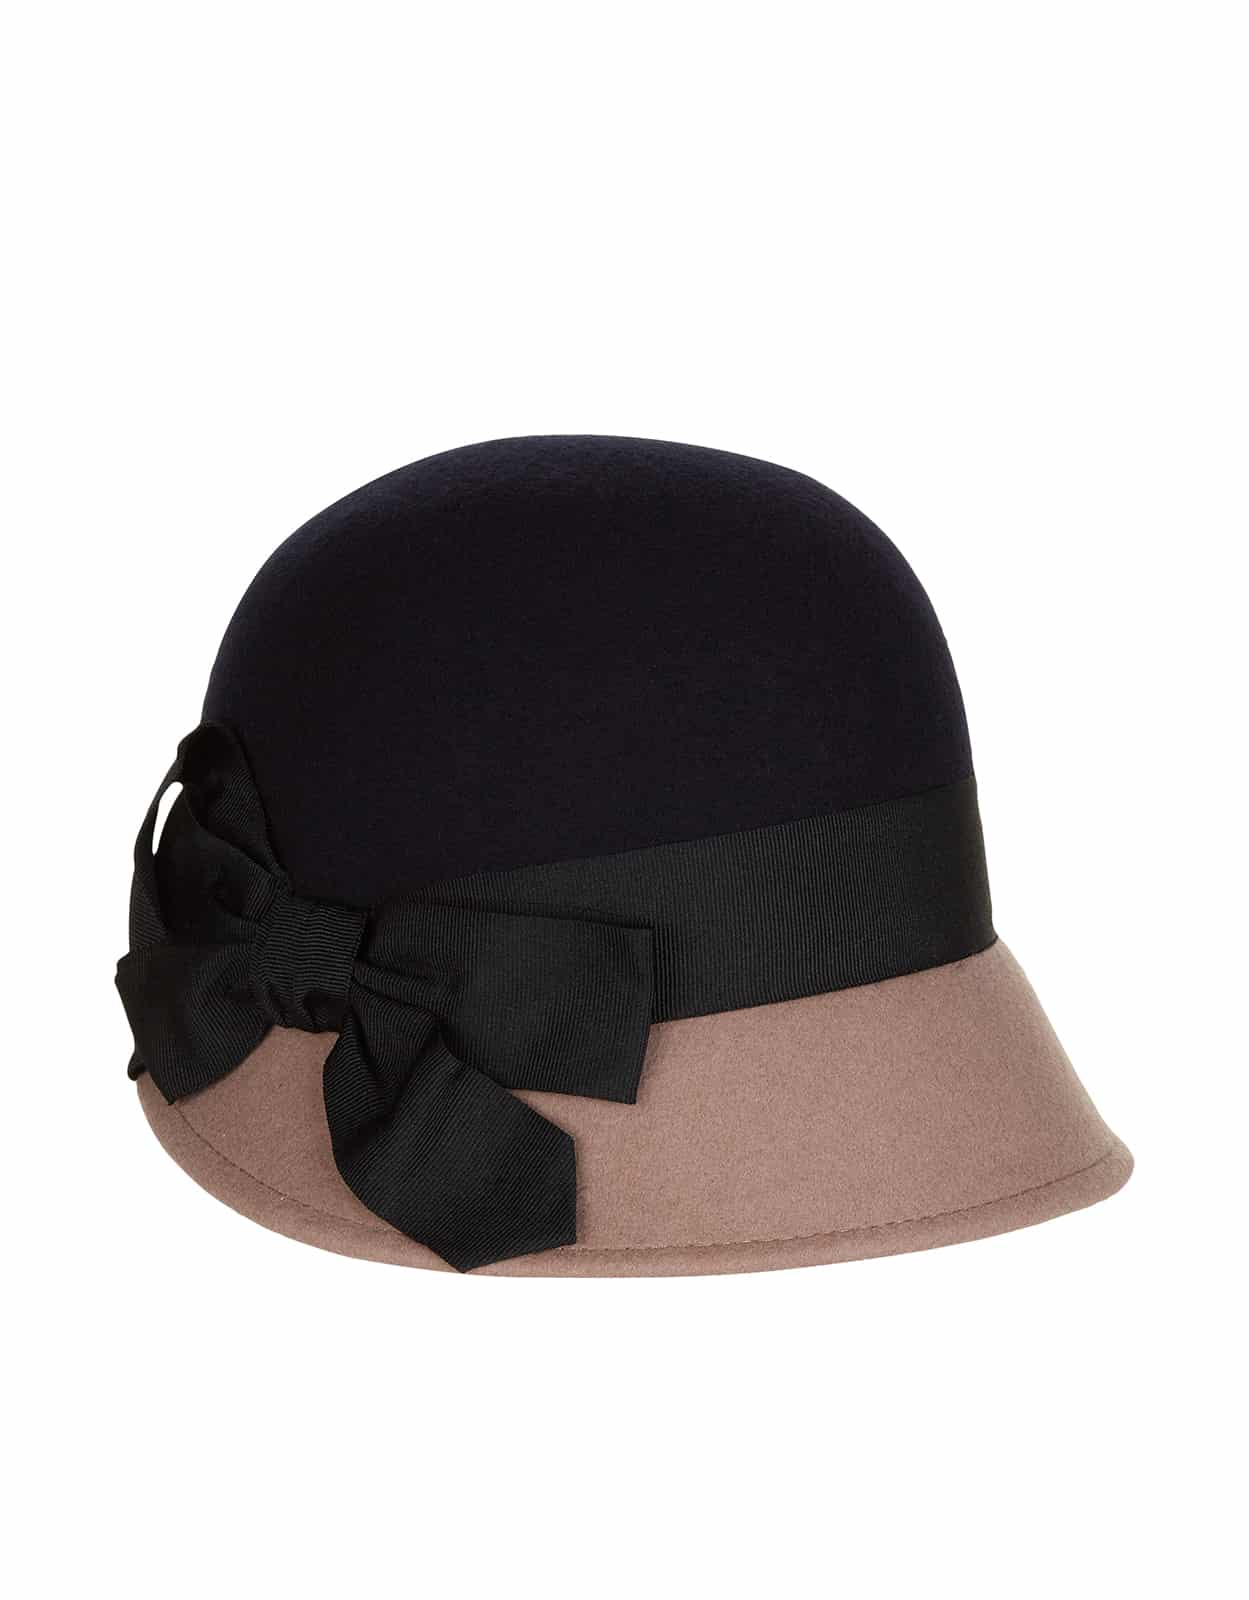 Accessorize cloche in lana bicolor 39.90 euro